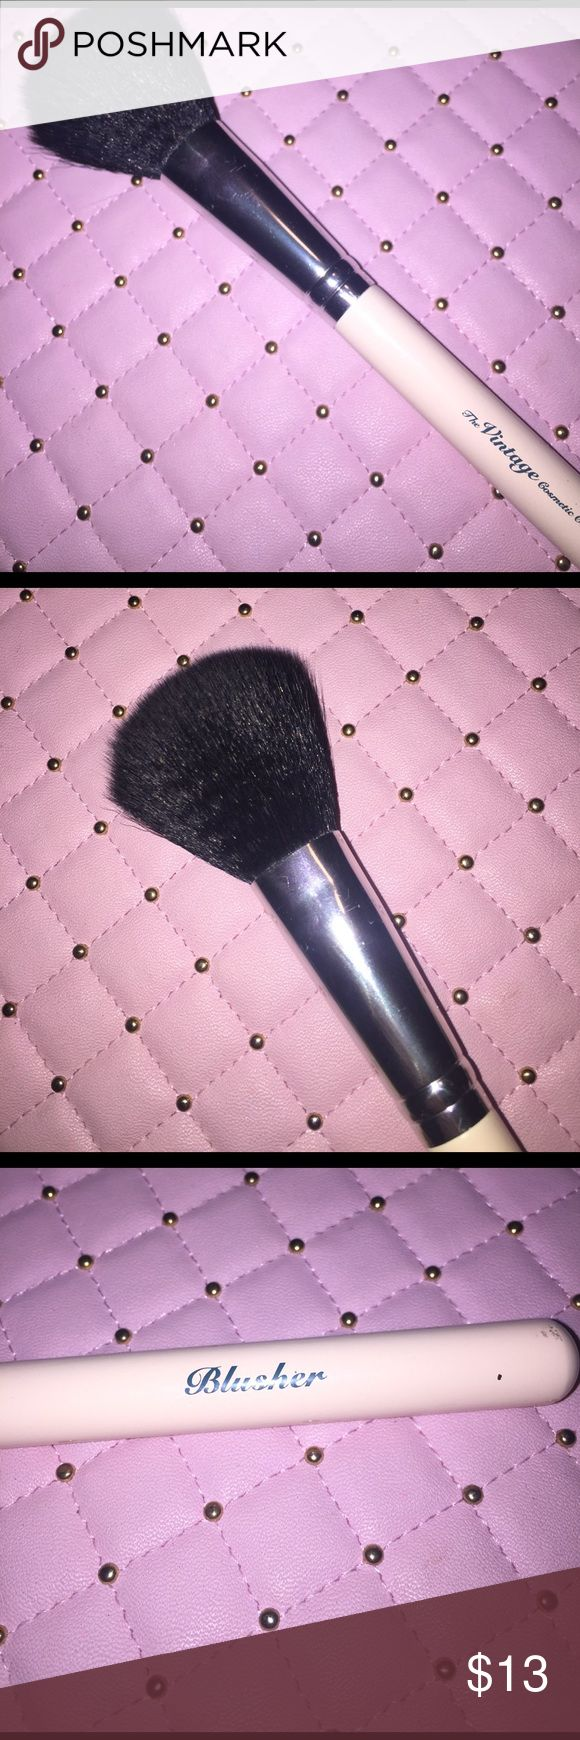 Fluffy Blush brush The Vintage Cosmetics Company •Blush brush - fluffy •great for blush/powder/bronzer  •used a couple of times - just trying to condense my brush collections Makeup Brushes & Tools